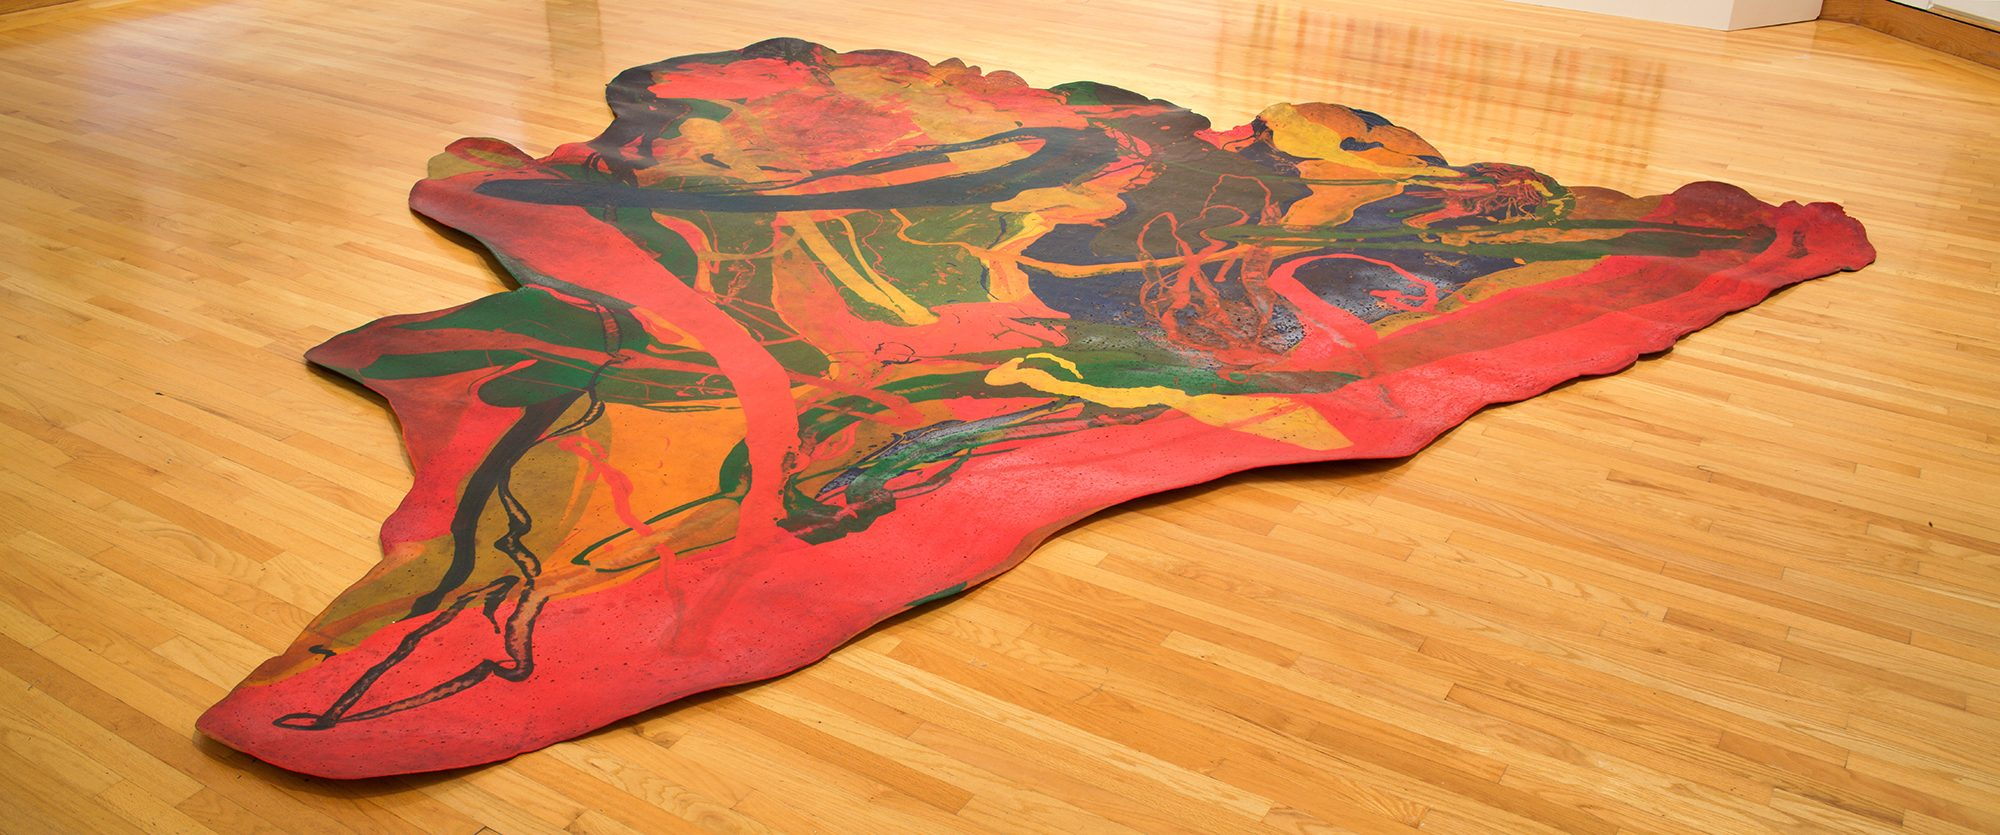 Lynda Benglis (American, b. 1941) Bounce, 1969. Poured polyurethane pigment, 161 x 188 in. Gift of Nancy and George Rosenfeld, 92.16